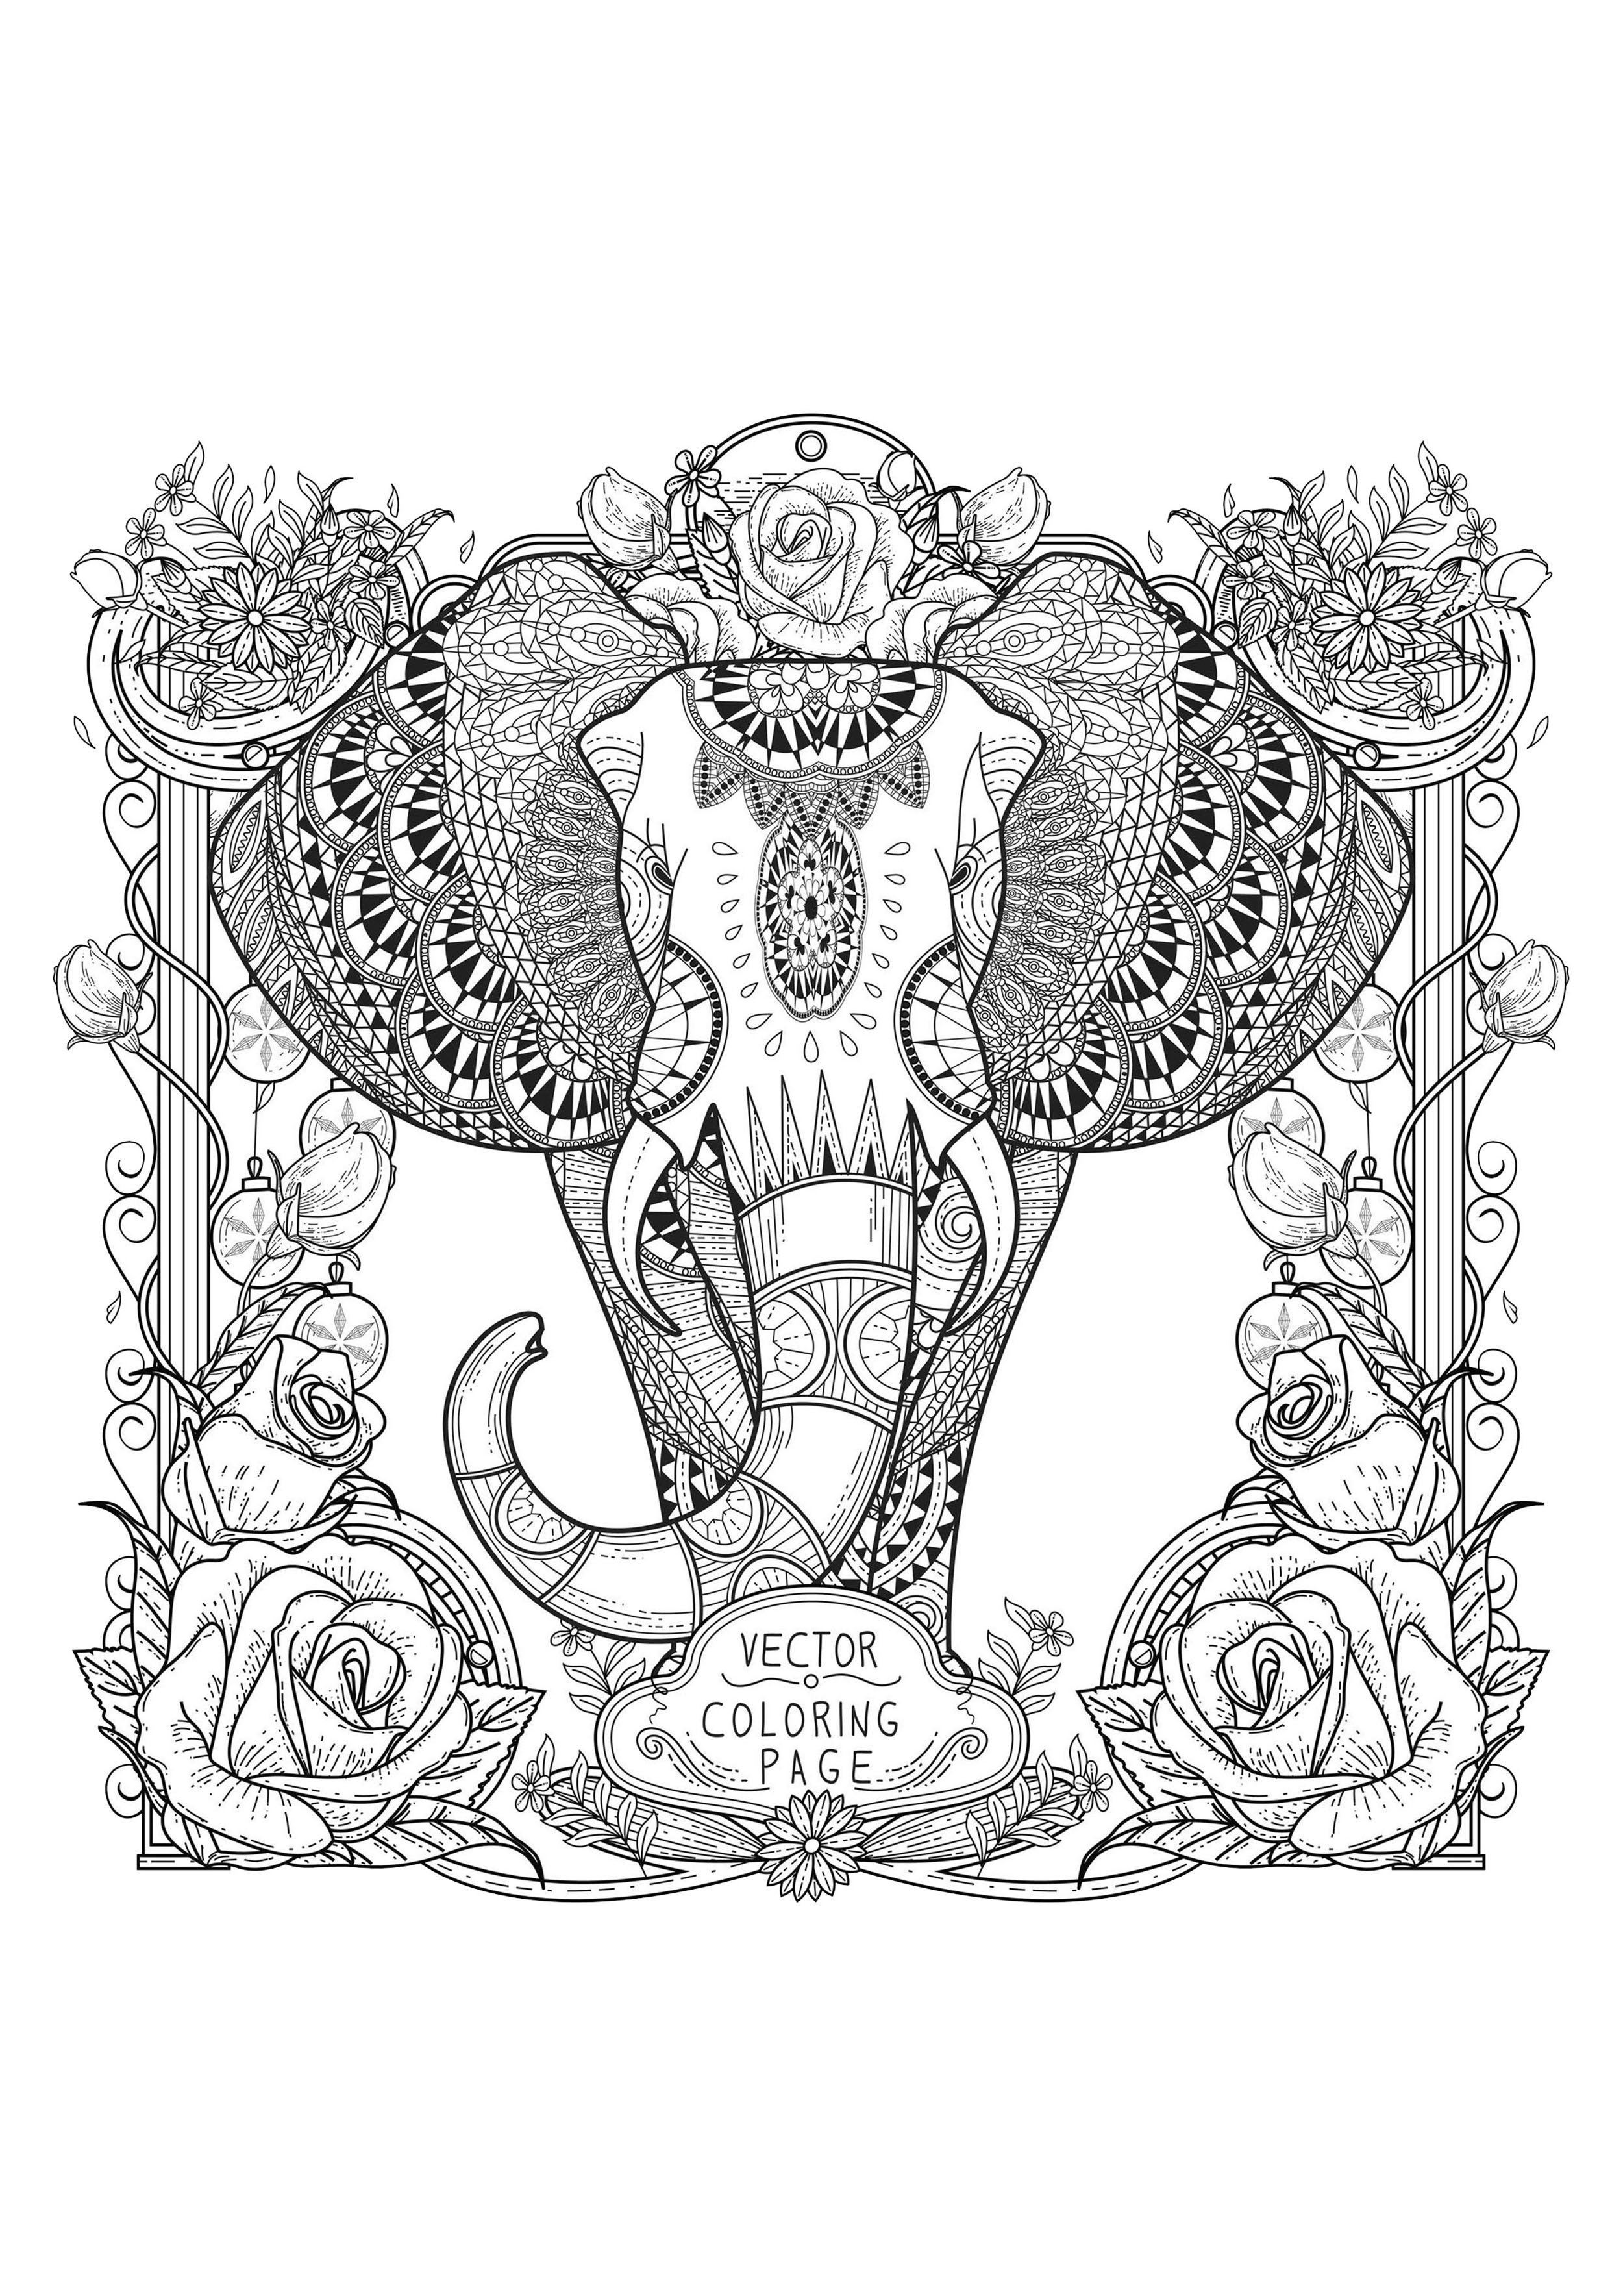 Huge Elephant and beautiful designs and complex illustrated border